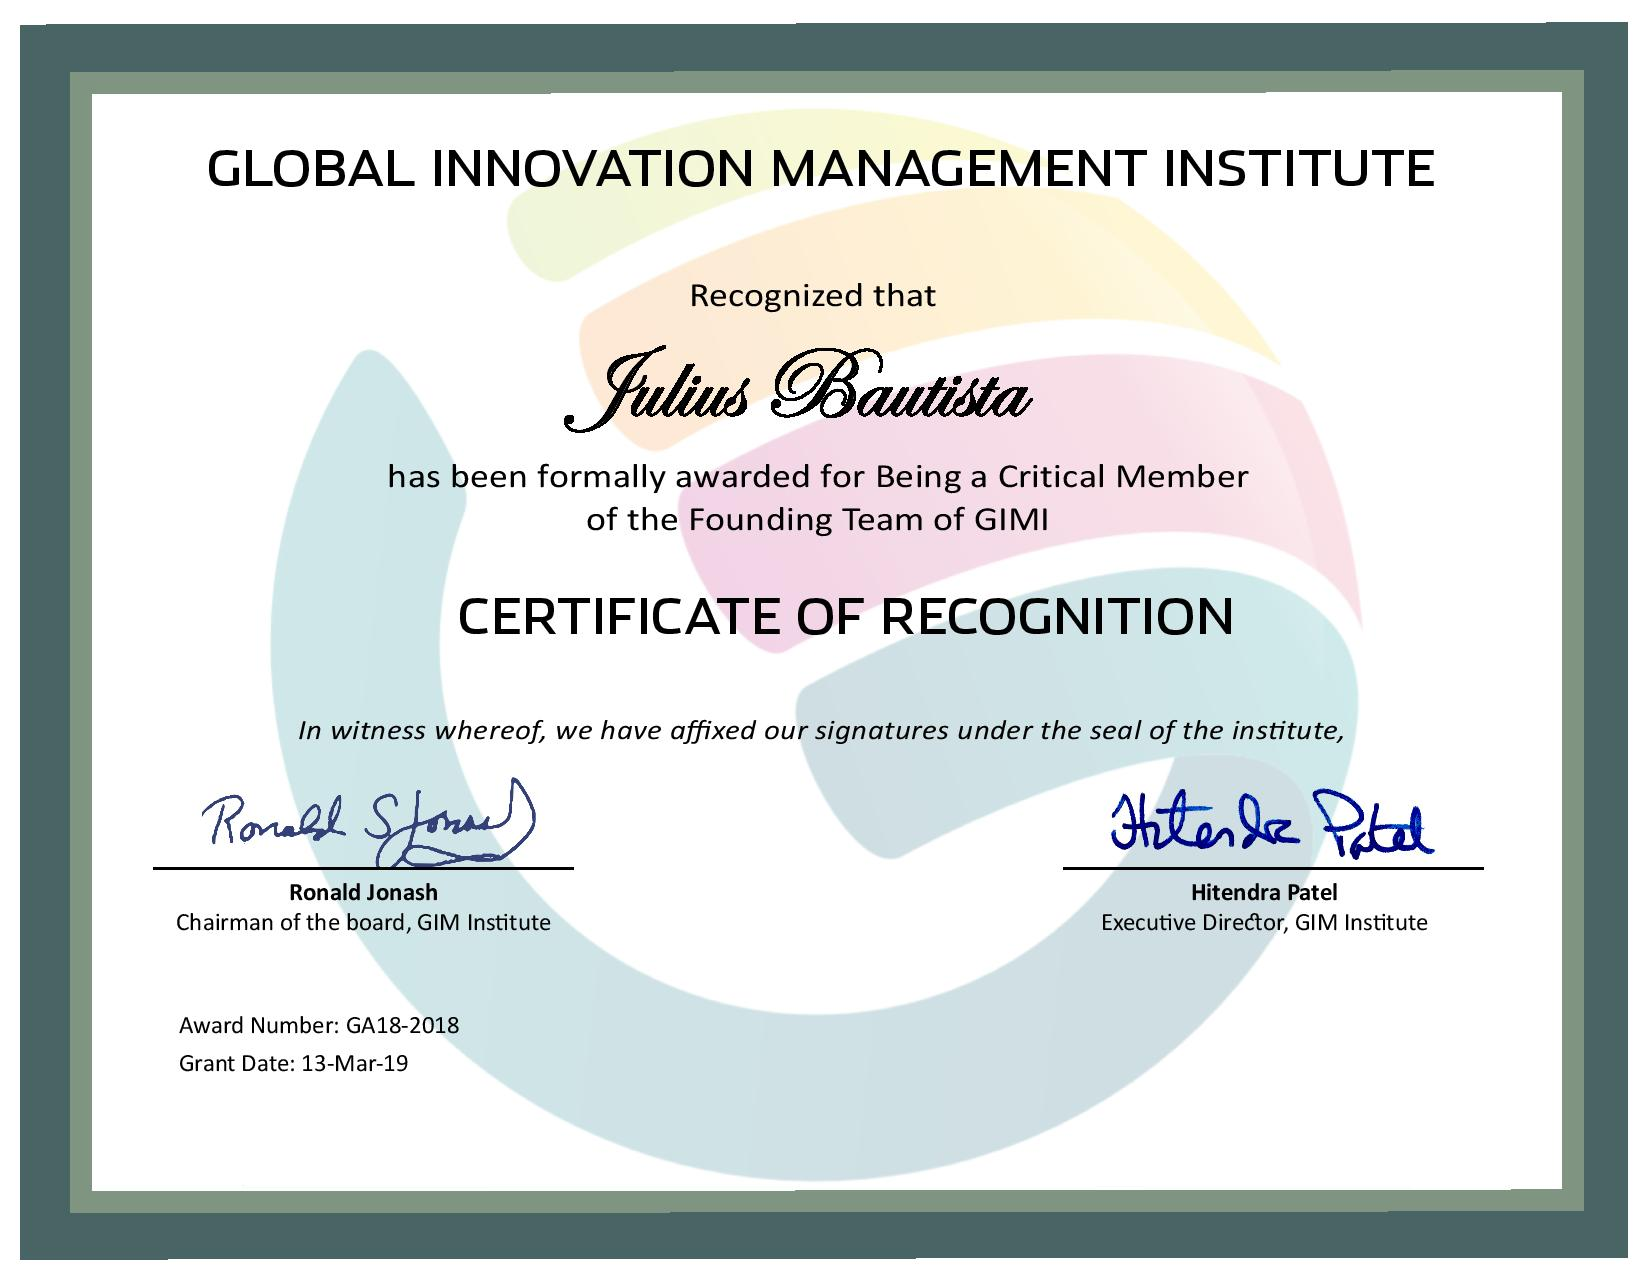 for Being a Critical Member of the Founding Team of GIMI